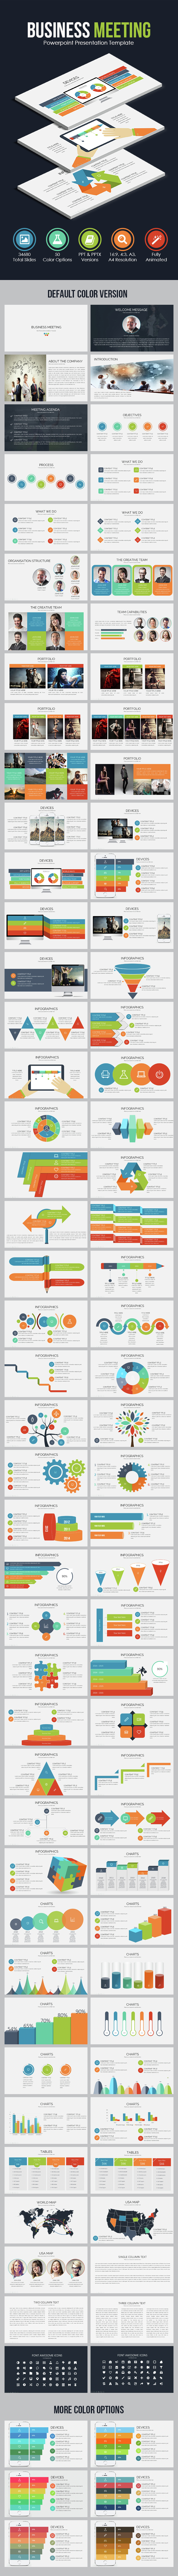 Business Meeting - Powerpoint Presentation Template - Business PowerPoint Templates